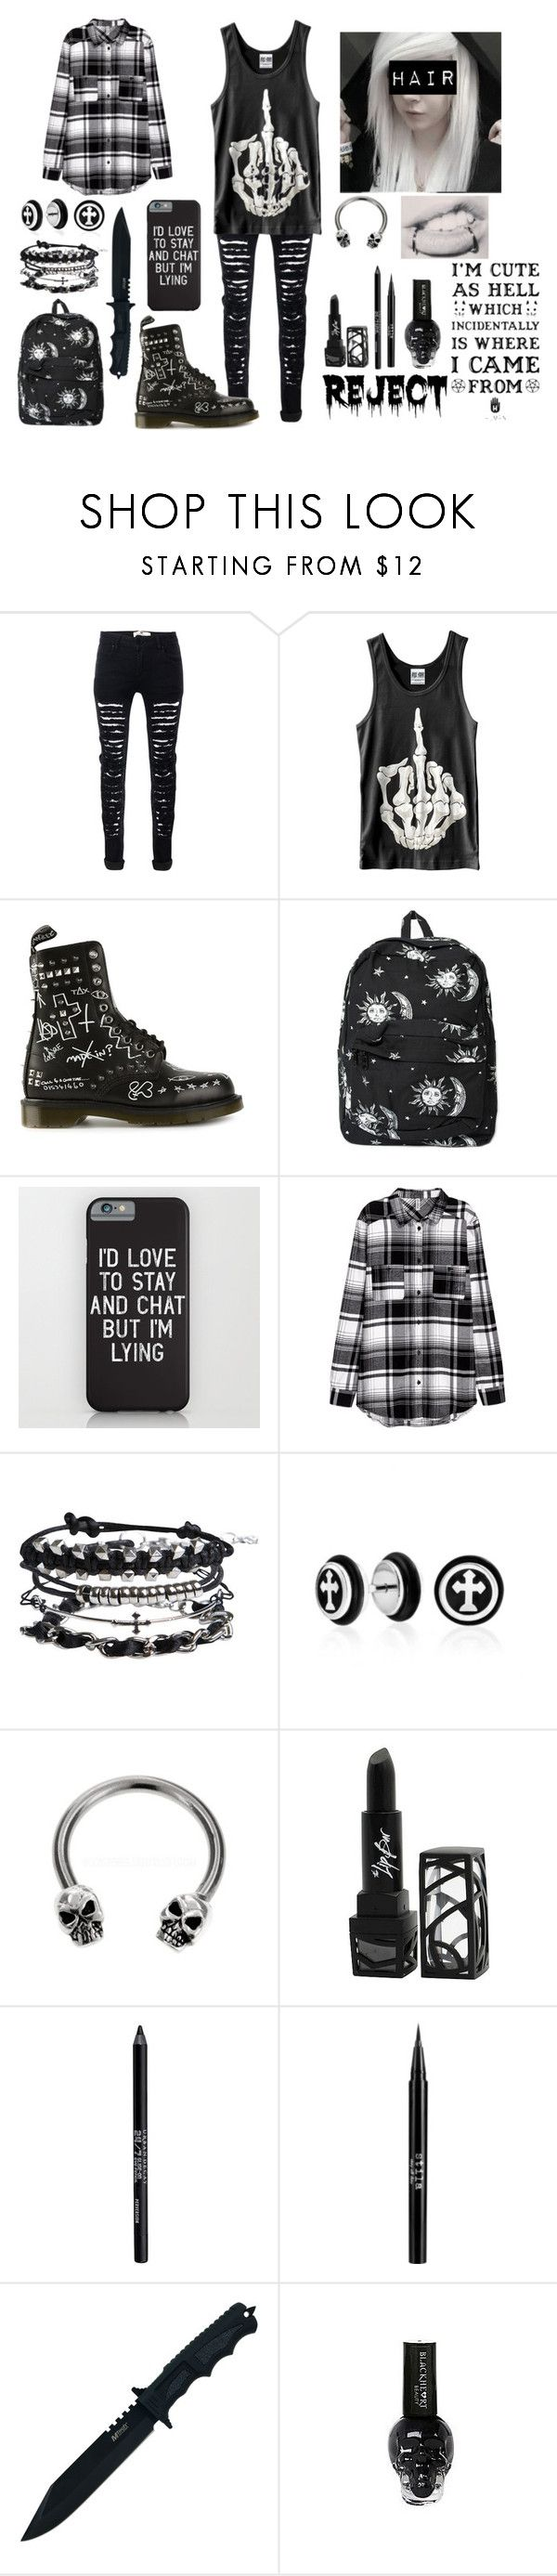 """""""Black and White"""" by blackisforever ❤ liked on Polyvore featuring Dr. Martens, Motel, Pieces, Bling Jewelry, The Lip Bar, Urban Decay, Stila, Handle and Hot Topic"""